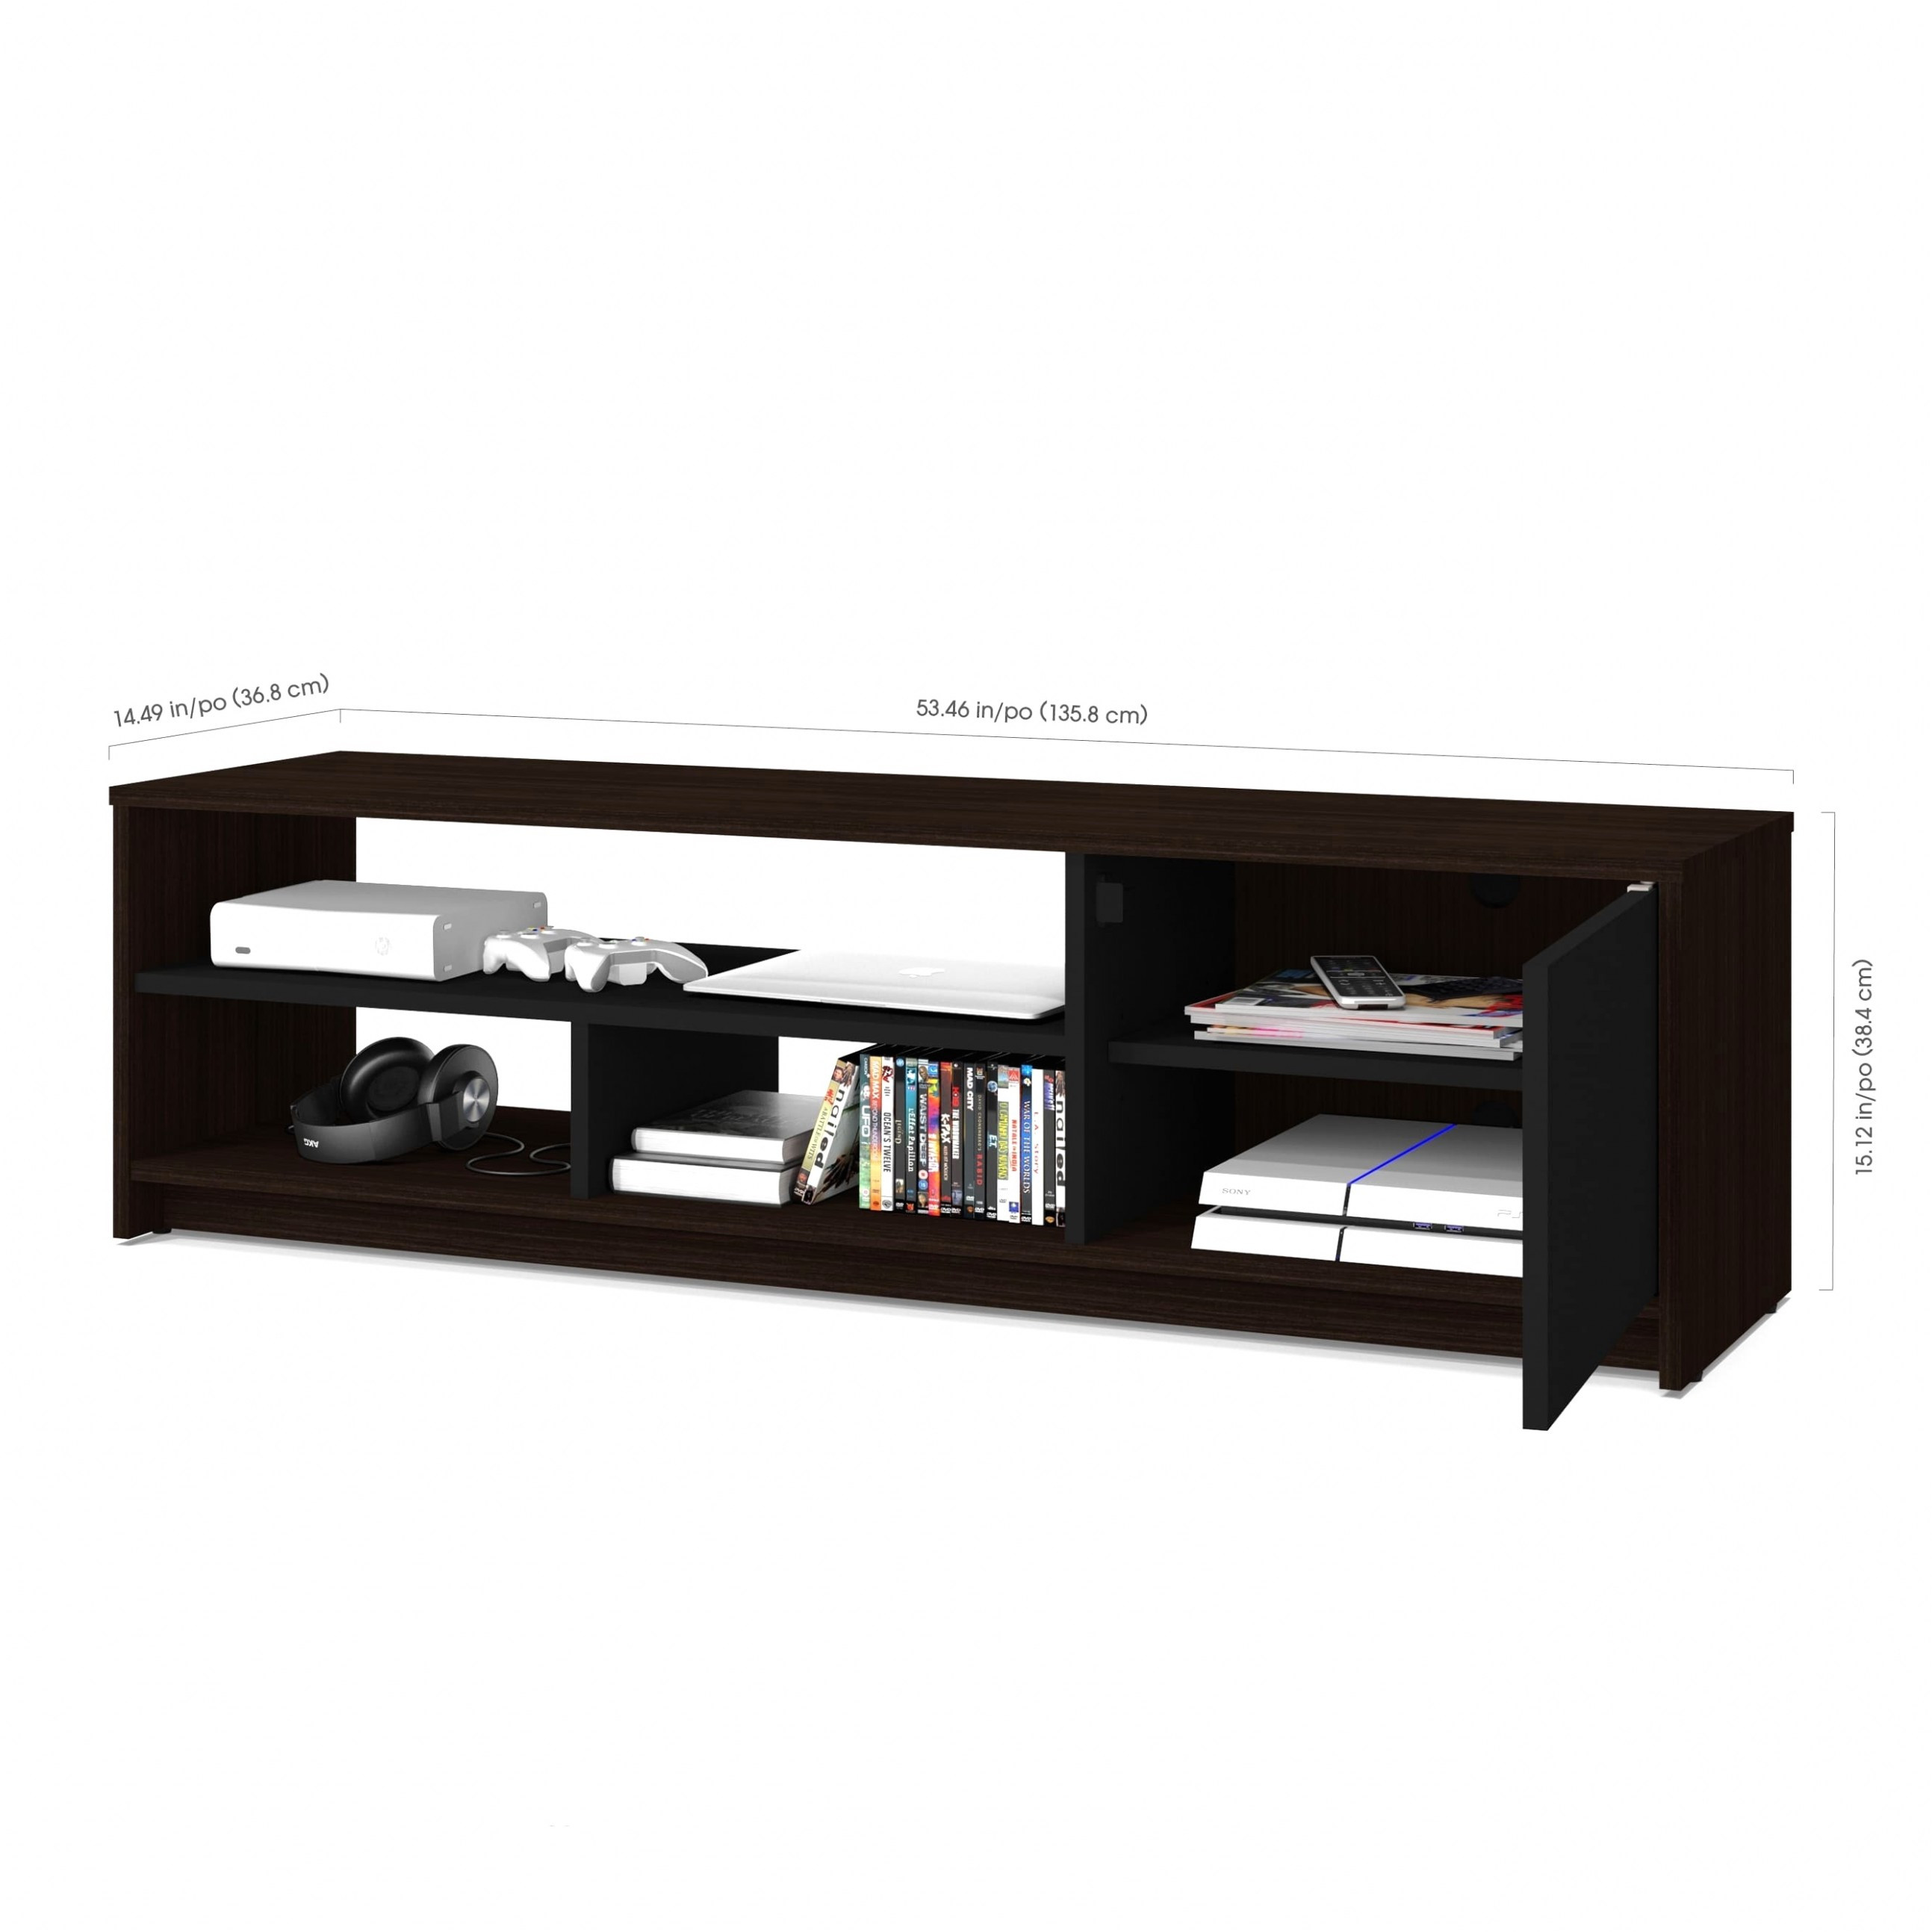 wood entertainment center plan diy wooden pallet made items for your